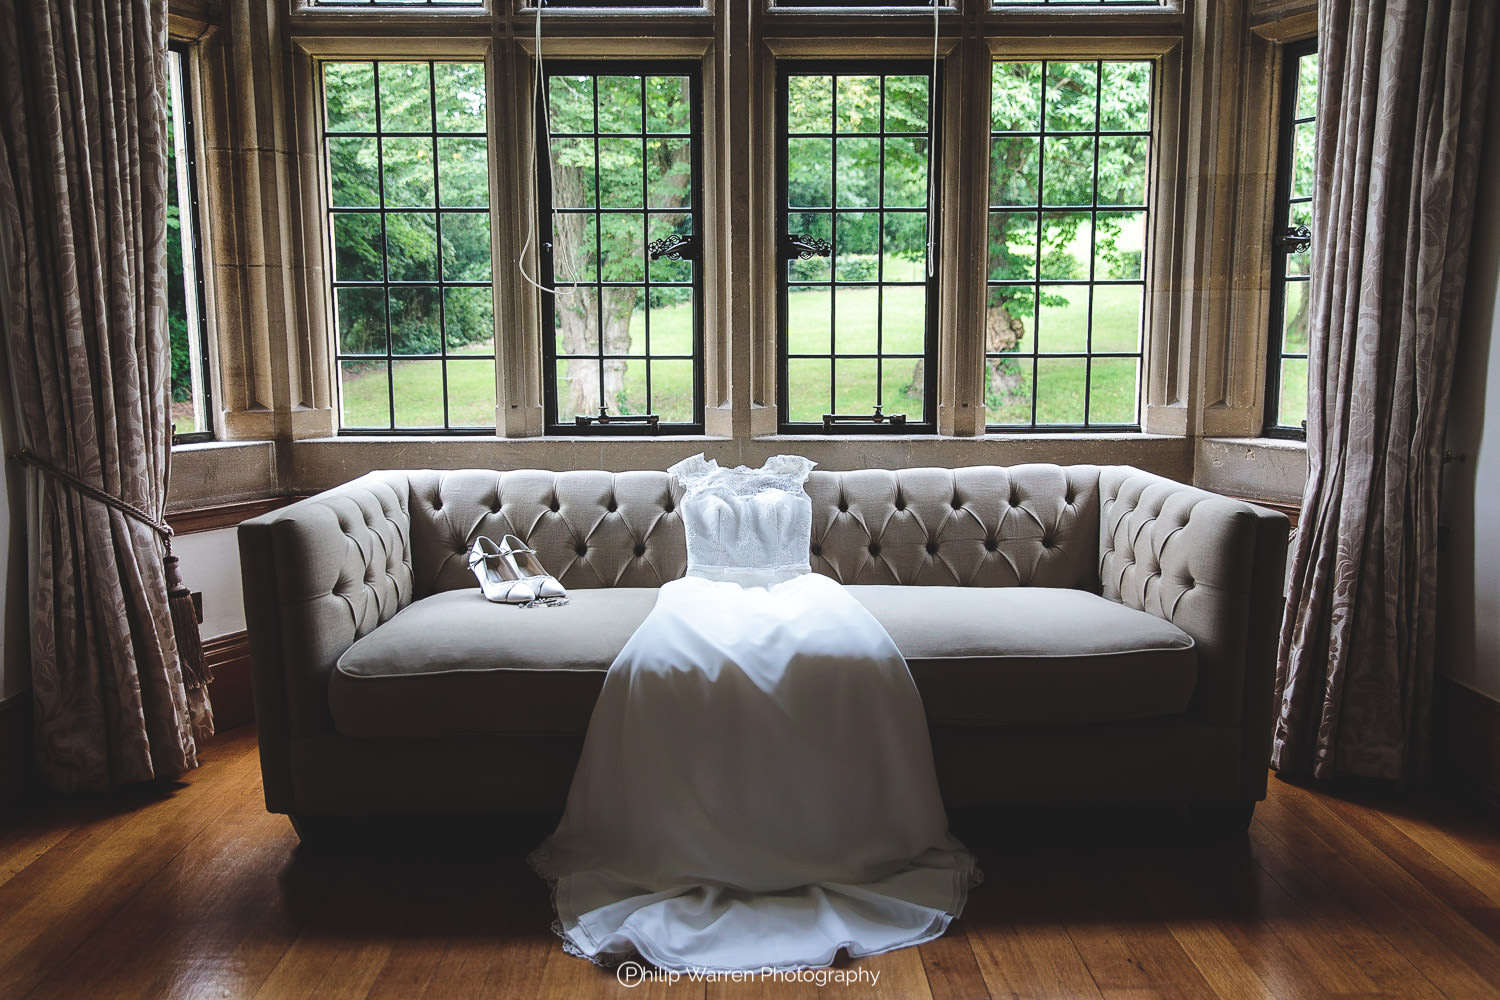 wedding dress laid out on settee